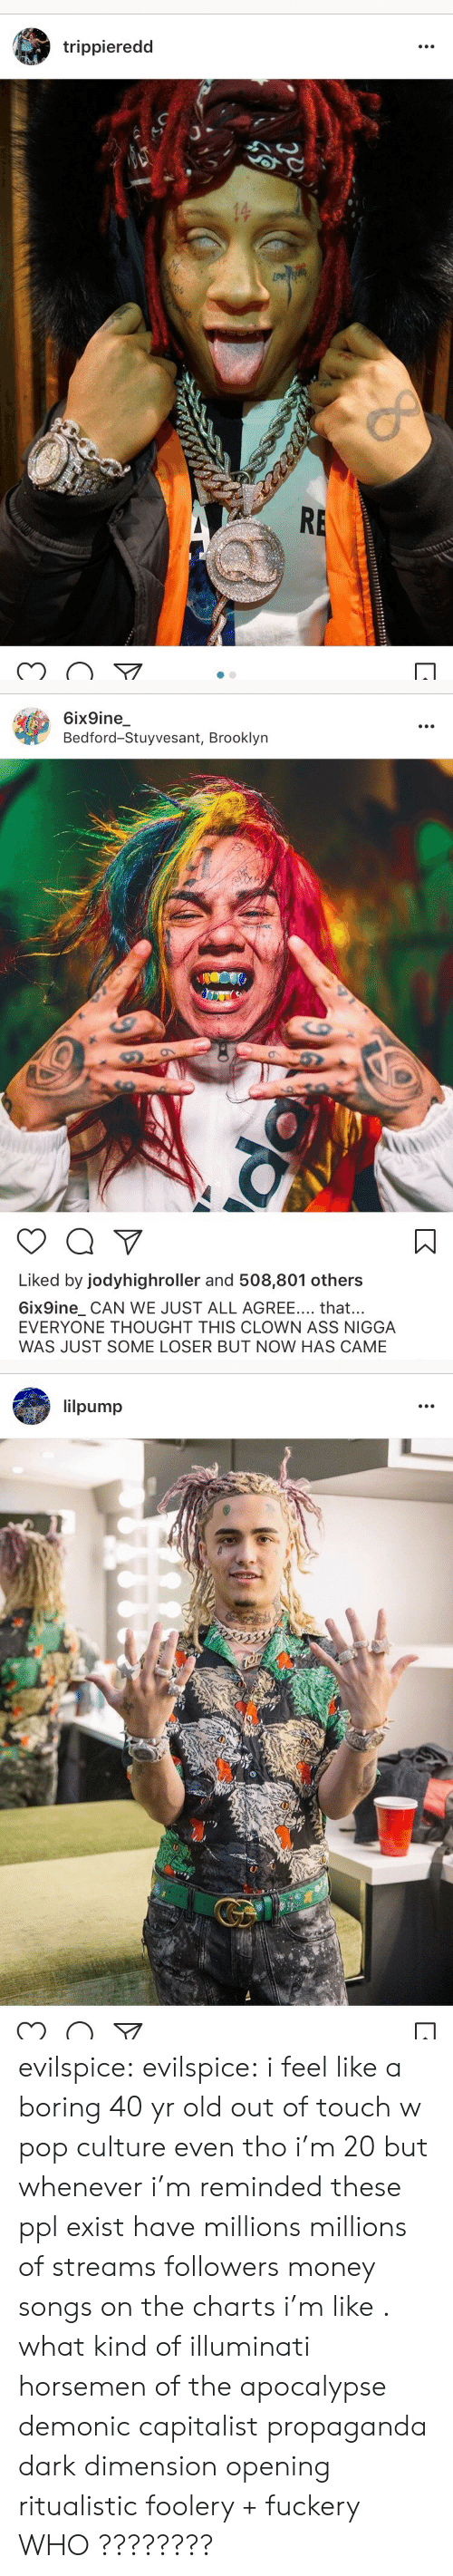 pop culture: trippieredd  of  RE   6ix9ine  Bedford-Stuyvesant, Brooklyn  NIN  Liked by jodyhighroller and 508,801 others  6ix9ine_ CAN WE JUST ALL AGREE... that...  EVERYONE THOUGHT THIS CLOWN ASS NIGGA  WAS JUST SOME LOSER BUT NOW HAS CAME   lilpump  1322 evilspice:  evilspice:  i feel like a boring 40 yr old out of touch w pop culture even tho i'm 20 but whenever i'm reminded these ppl exist  have millions  millions of streams  followers  money  songs on the charts i'm like . what kind of illuminati horsemen of the apocalypse demonic capitalist propaganda dark dimension opening ritualistic foolery + fuckery  WHO ????????